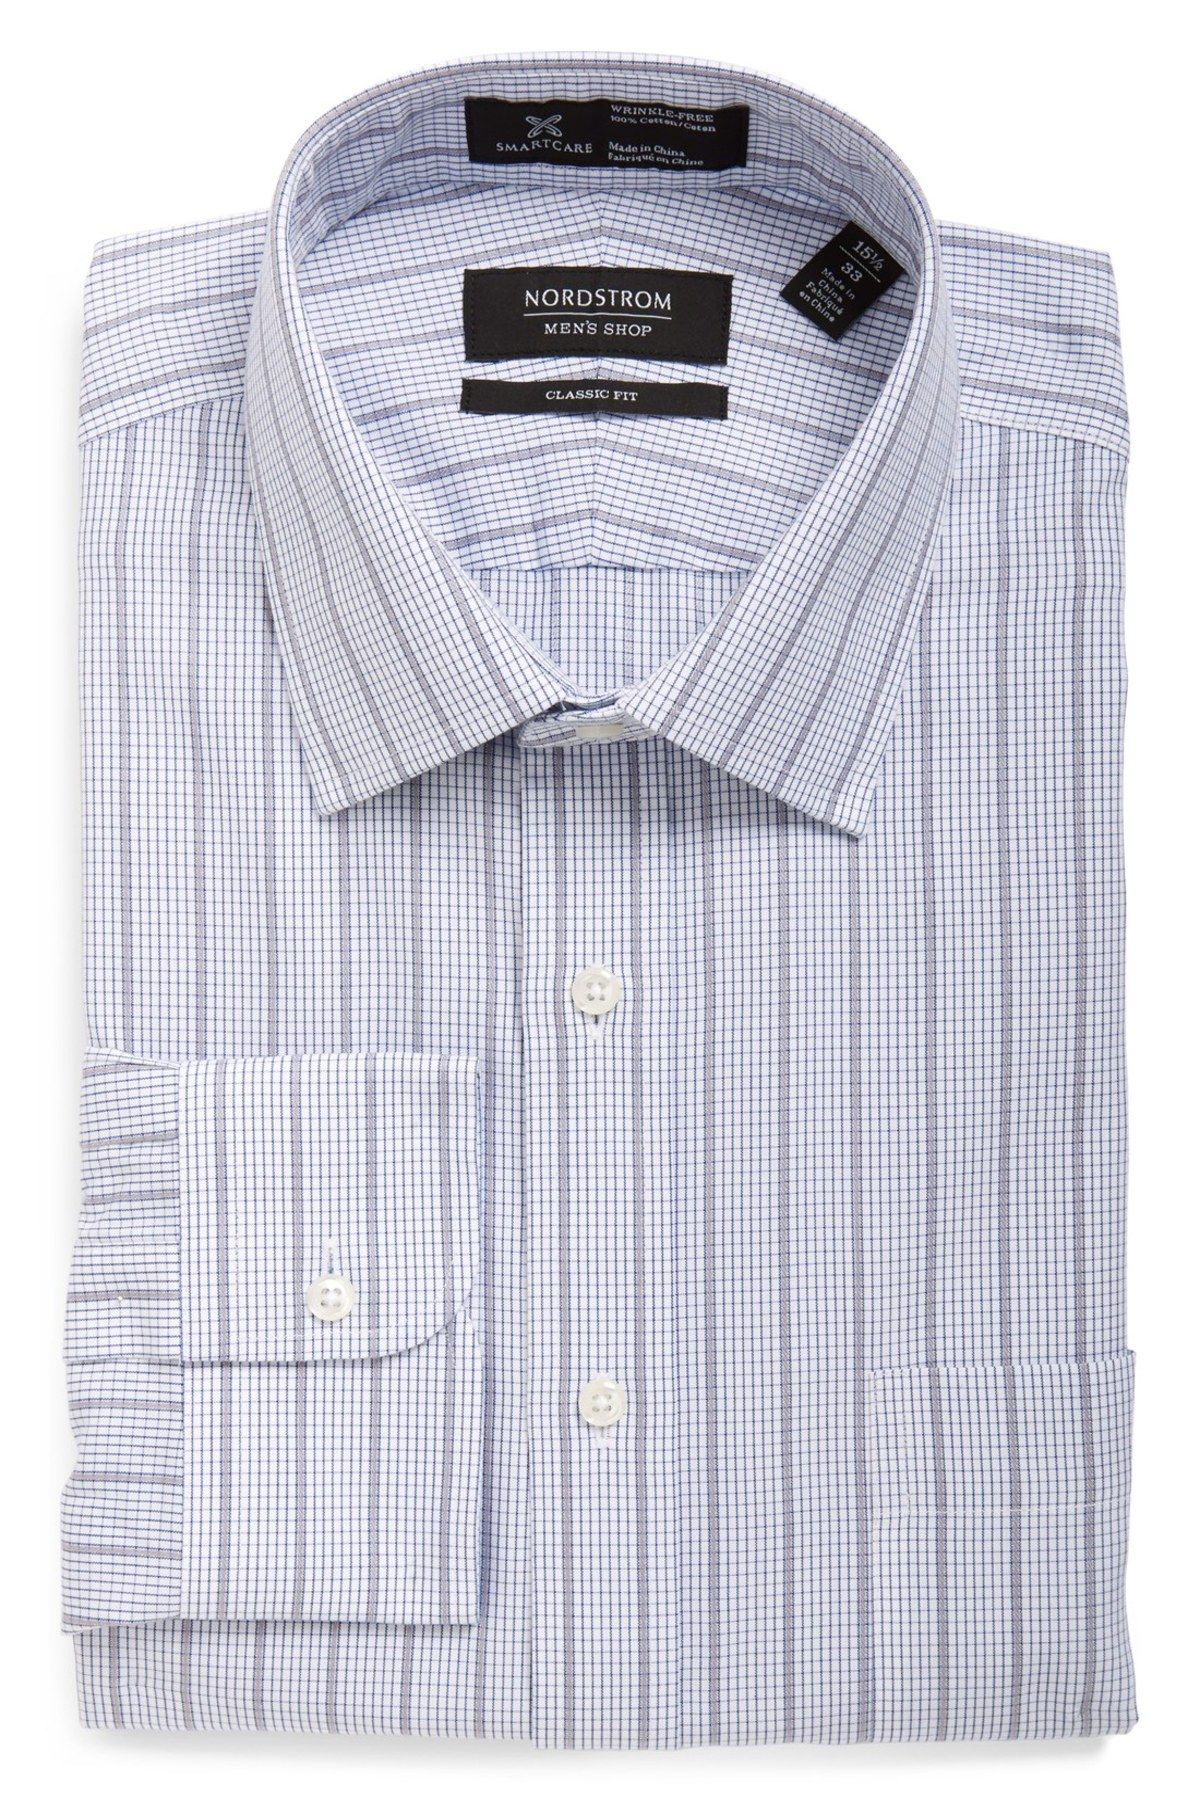 Nordstrom Smartcare Mens Dress Shirts